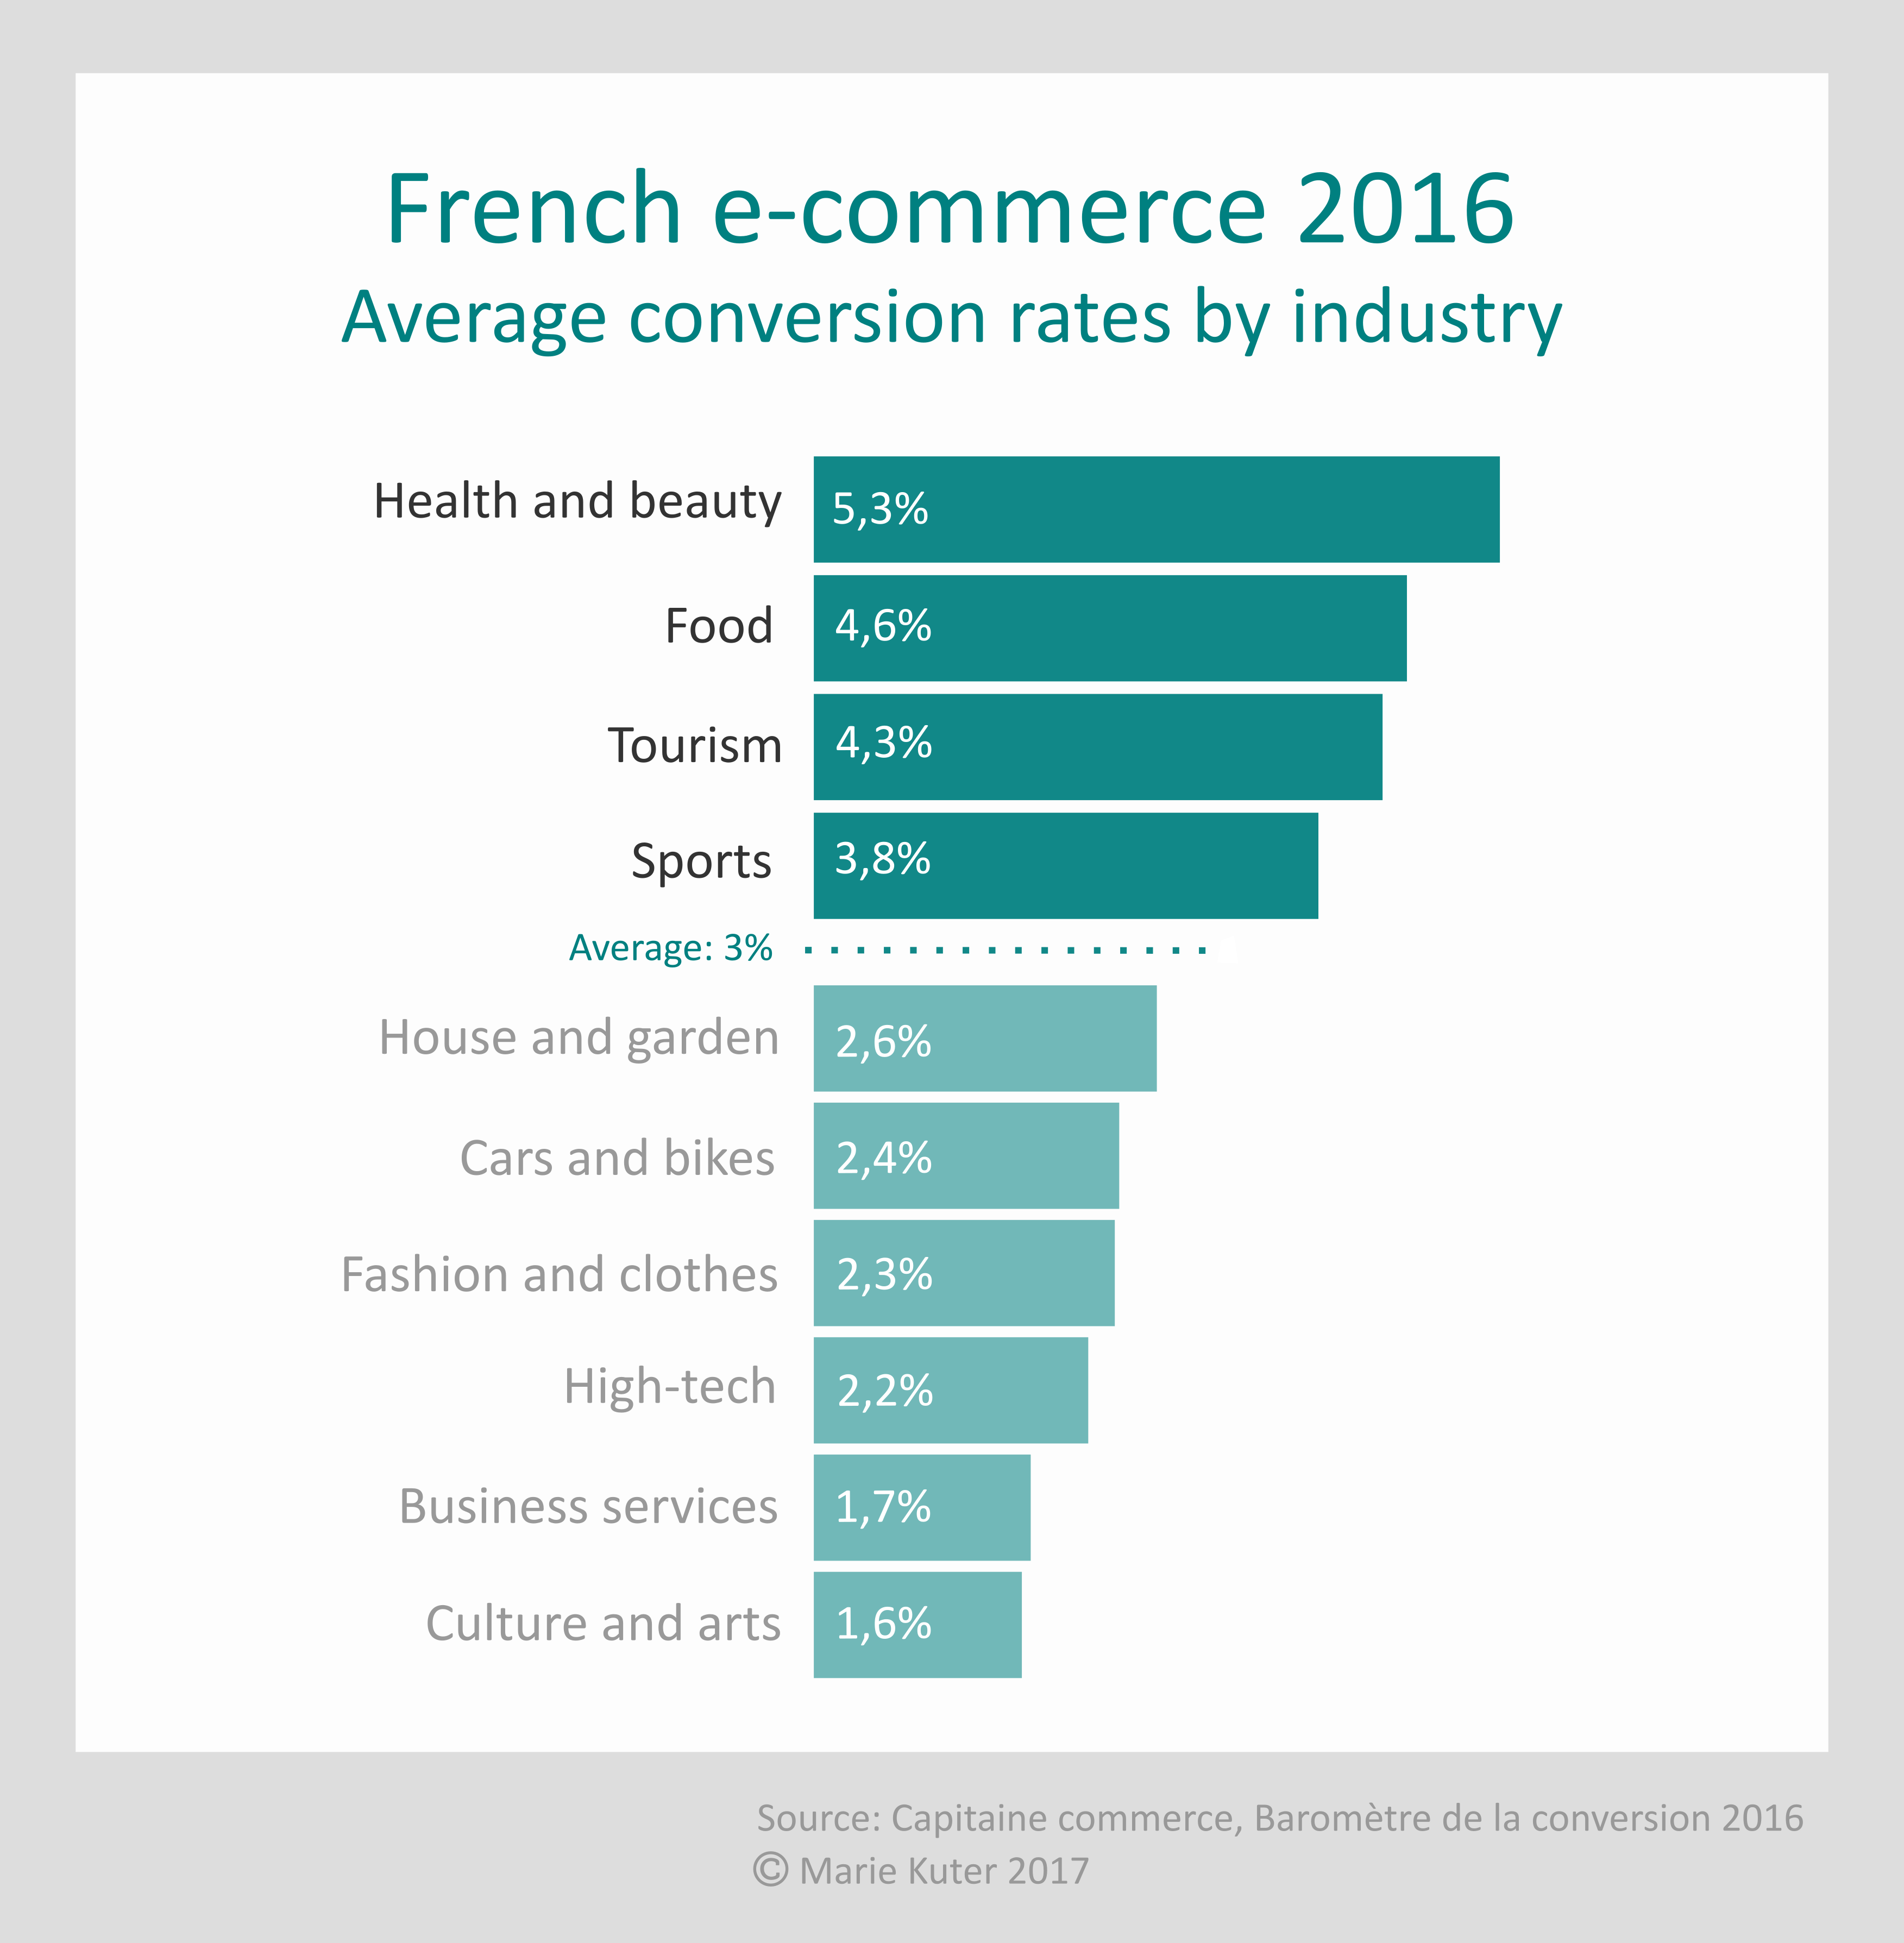 French e-commerce barometer 2016: conversion rates by industry